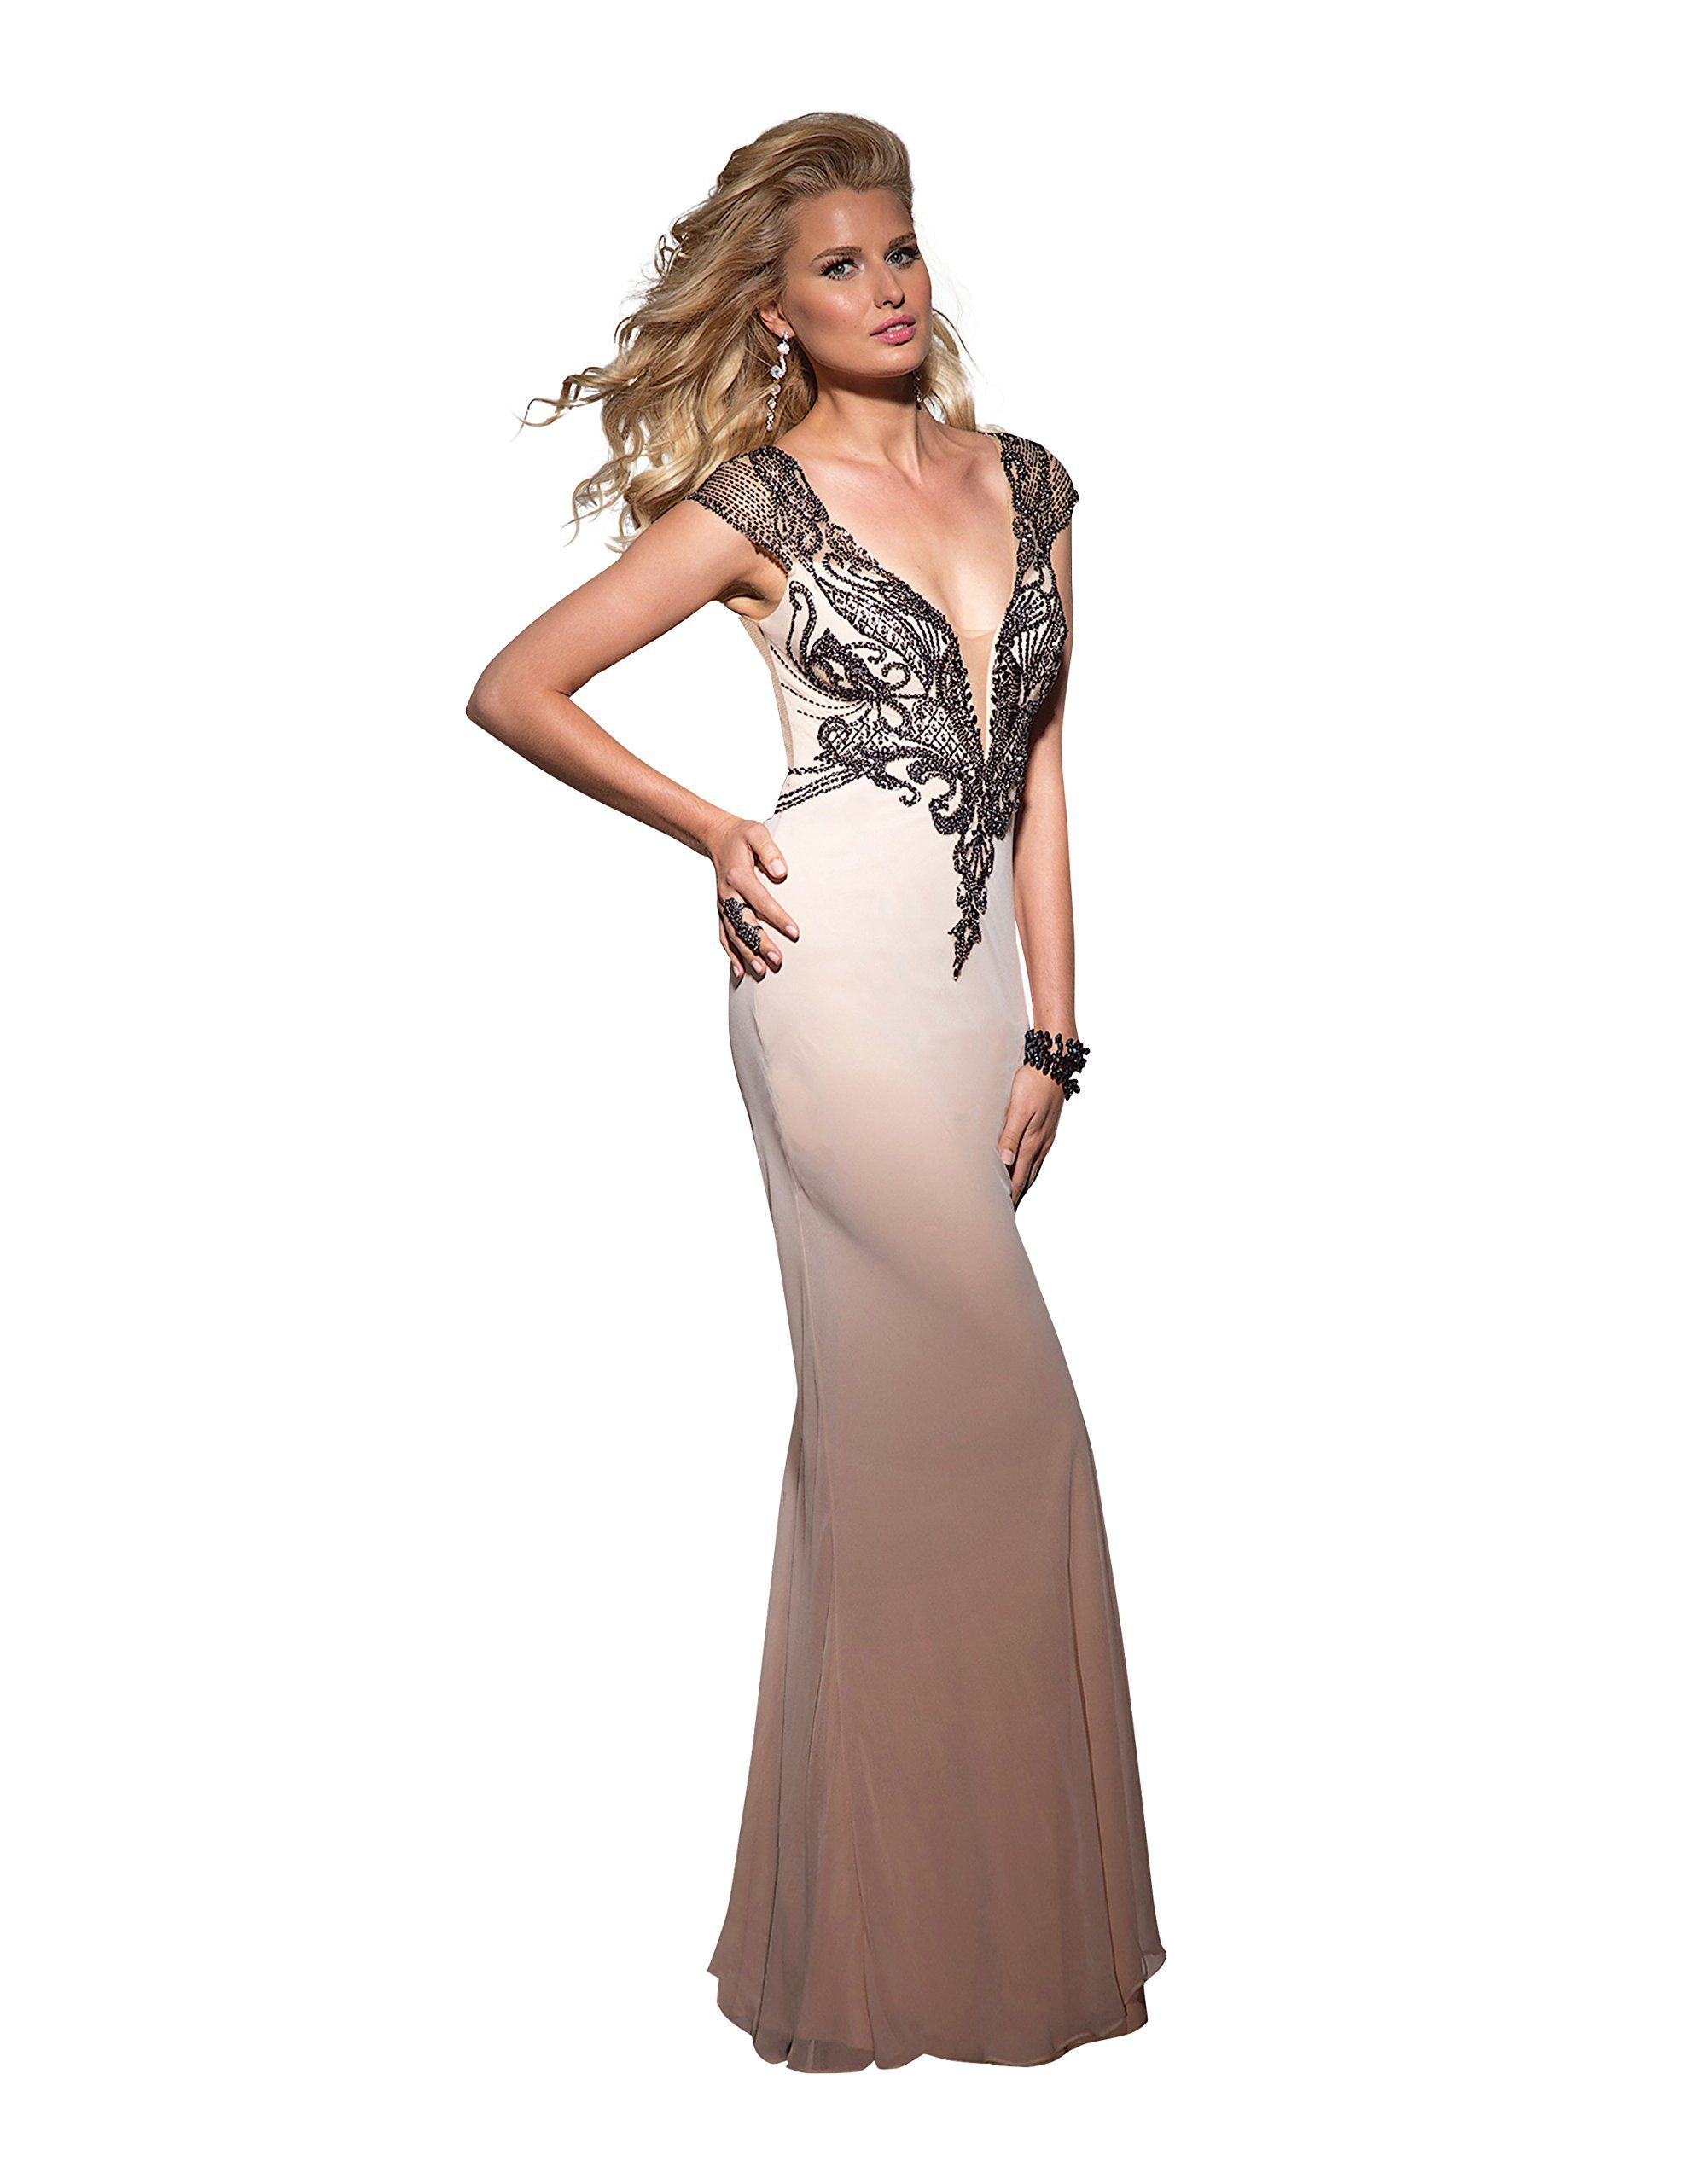 Clarisse vneck evening gown and prom dress size champagne